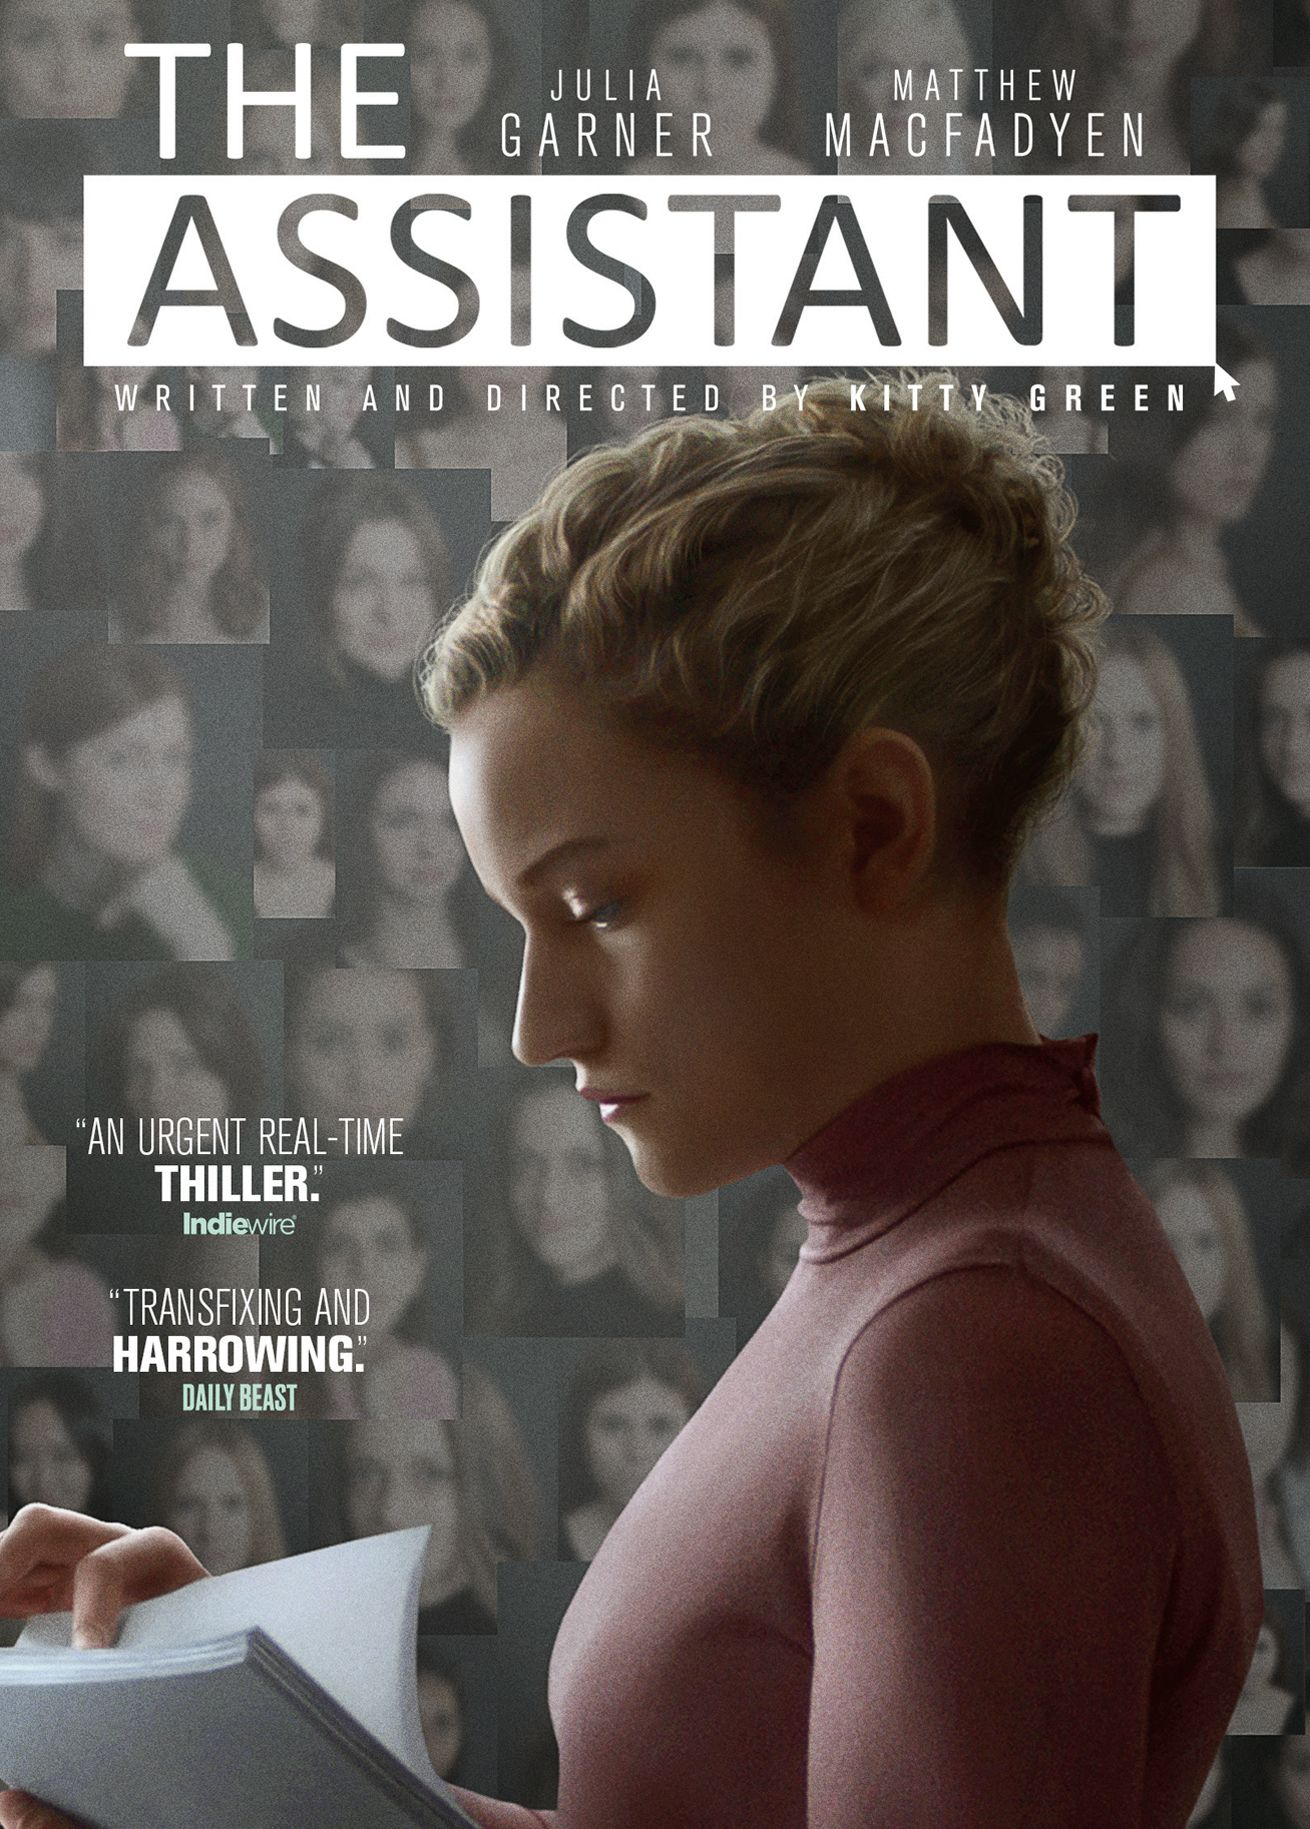 4782 The Assistant (2020) 720p WEBRip 800MB in 2020 | Movies, Movie  posters, Julia